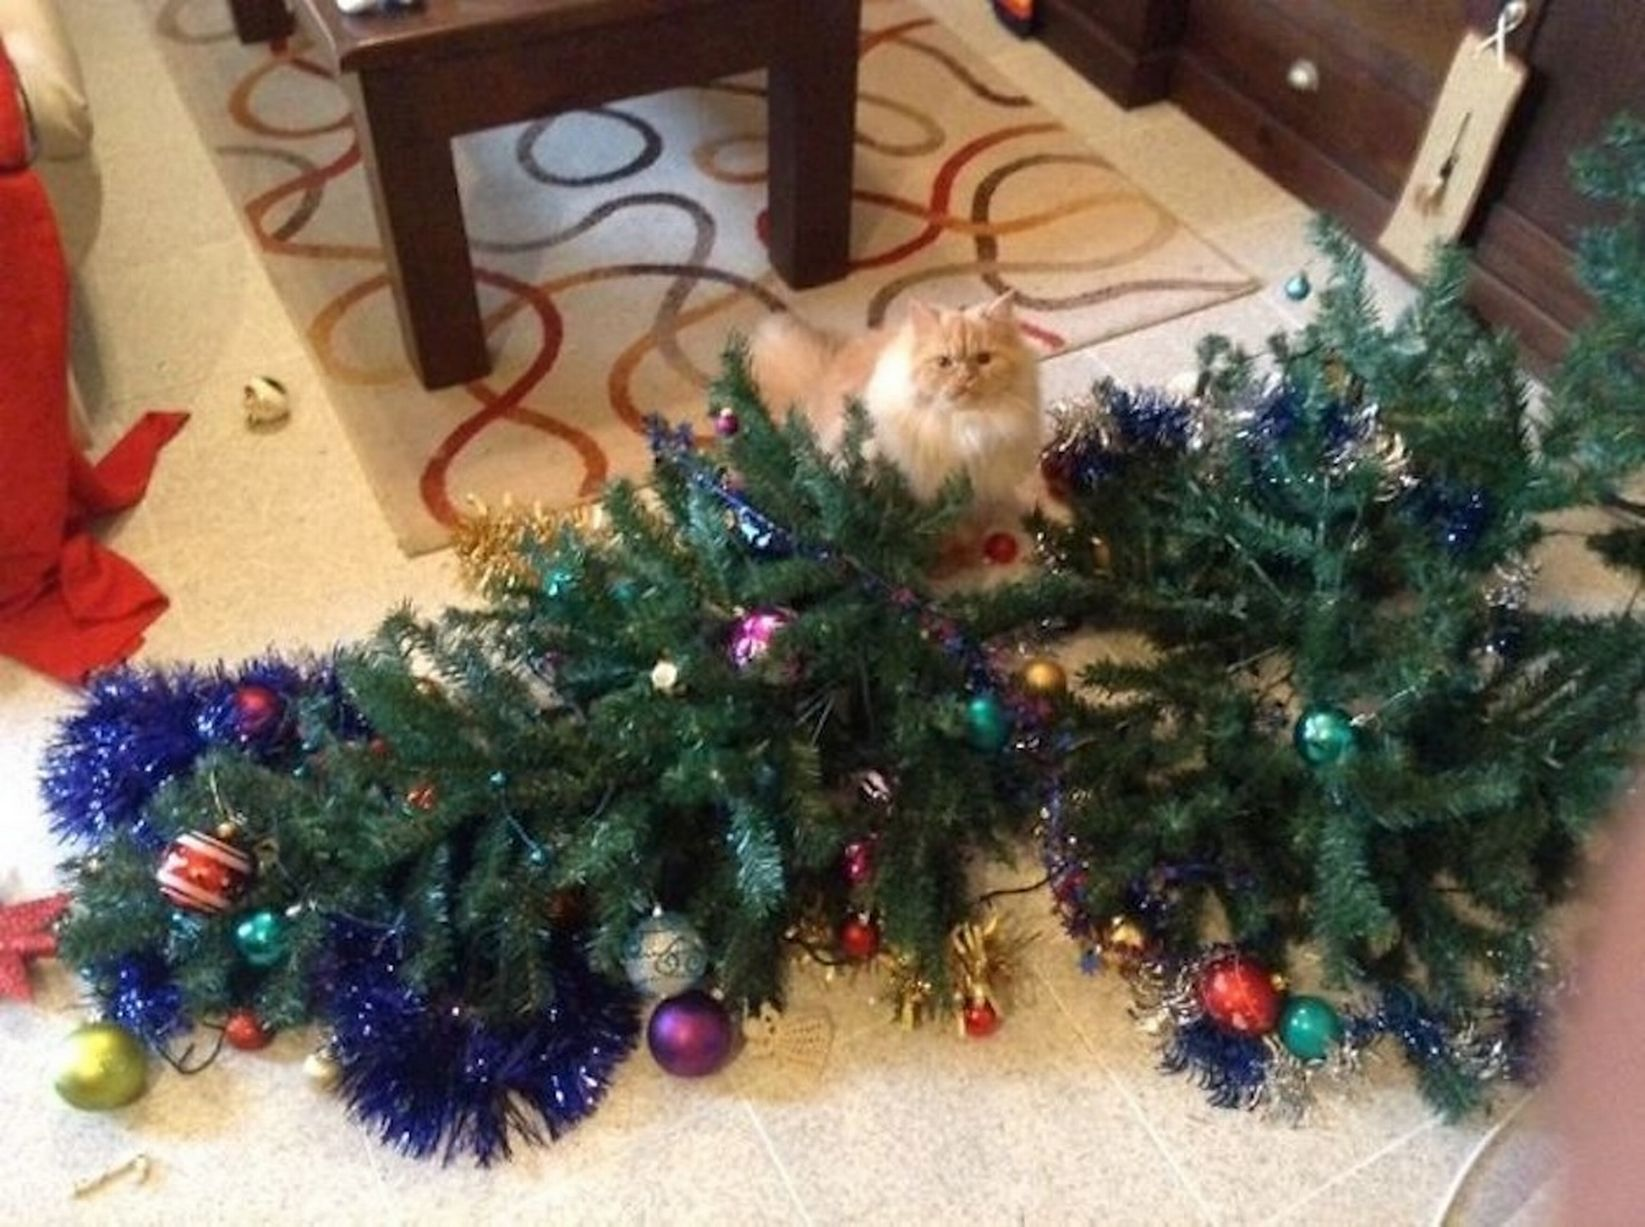 PAY-Cats-and-dogs-that-destroy-Christmas.